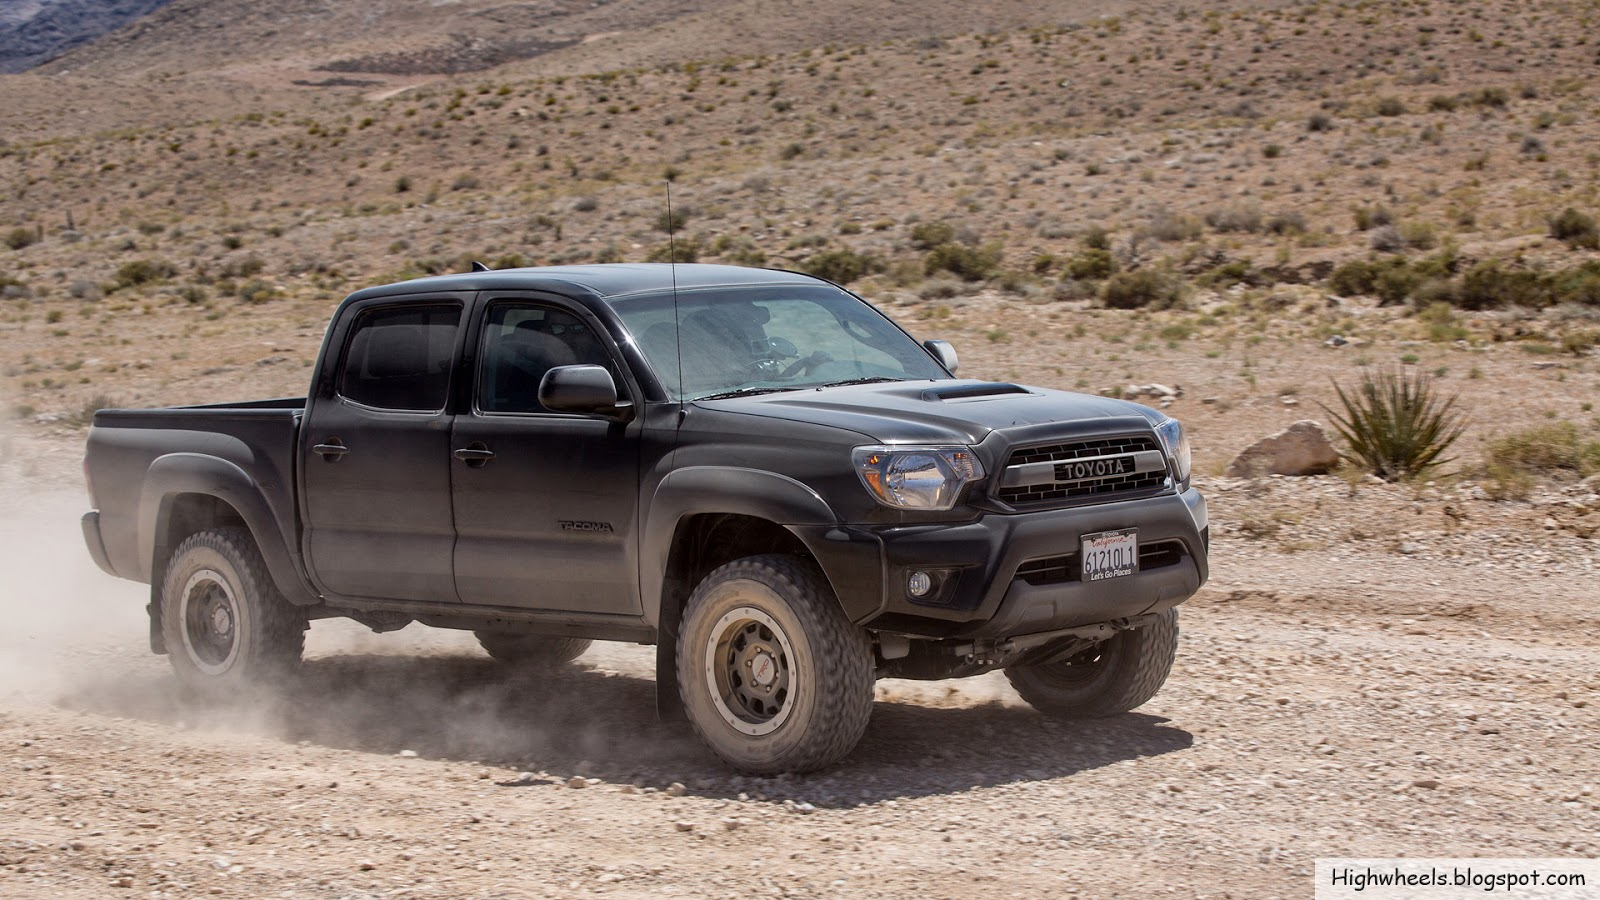 2015 toyota tacoma trd pro series high wheels. Black Bedroom Furniture Sets. Home Design Ideas